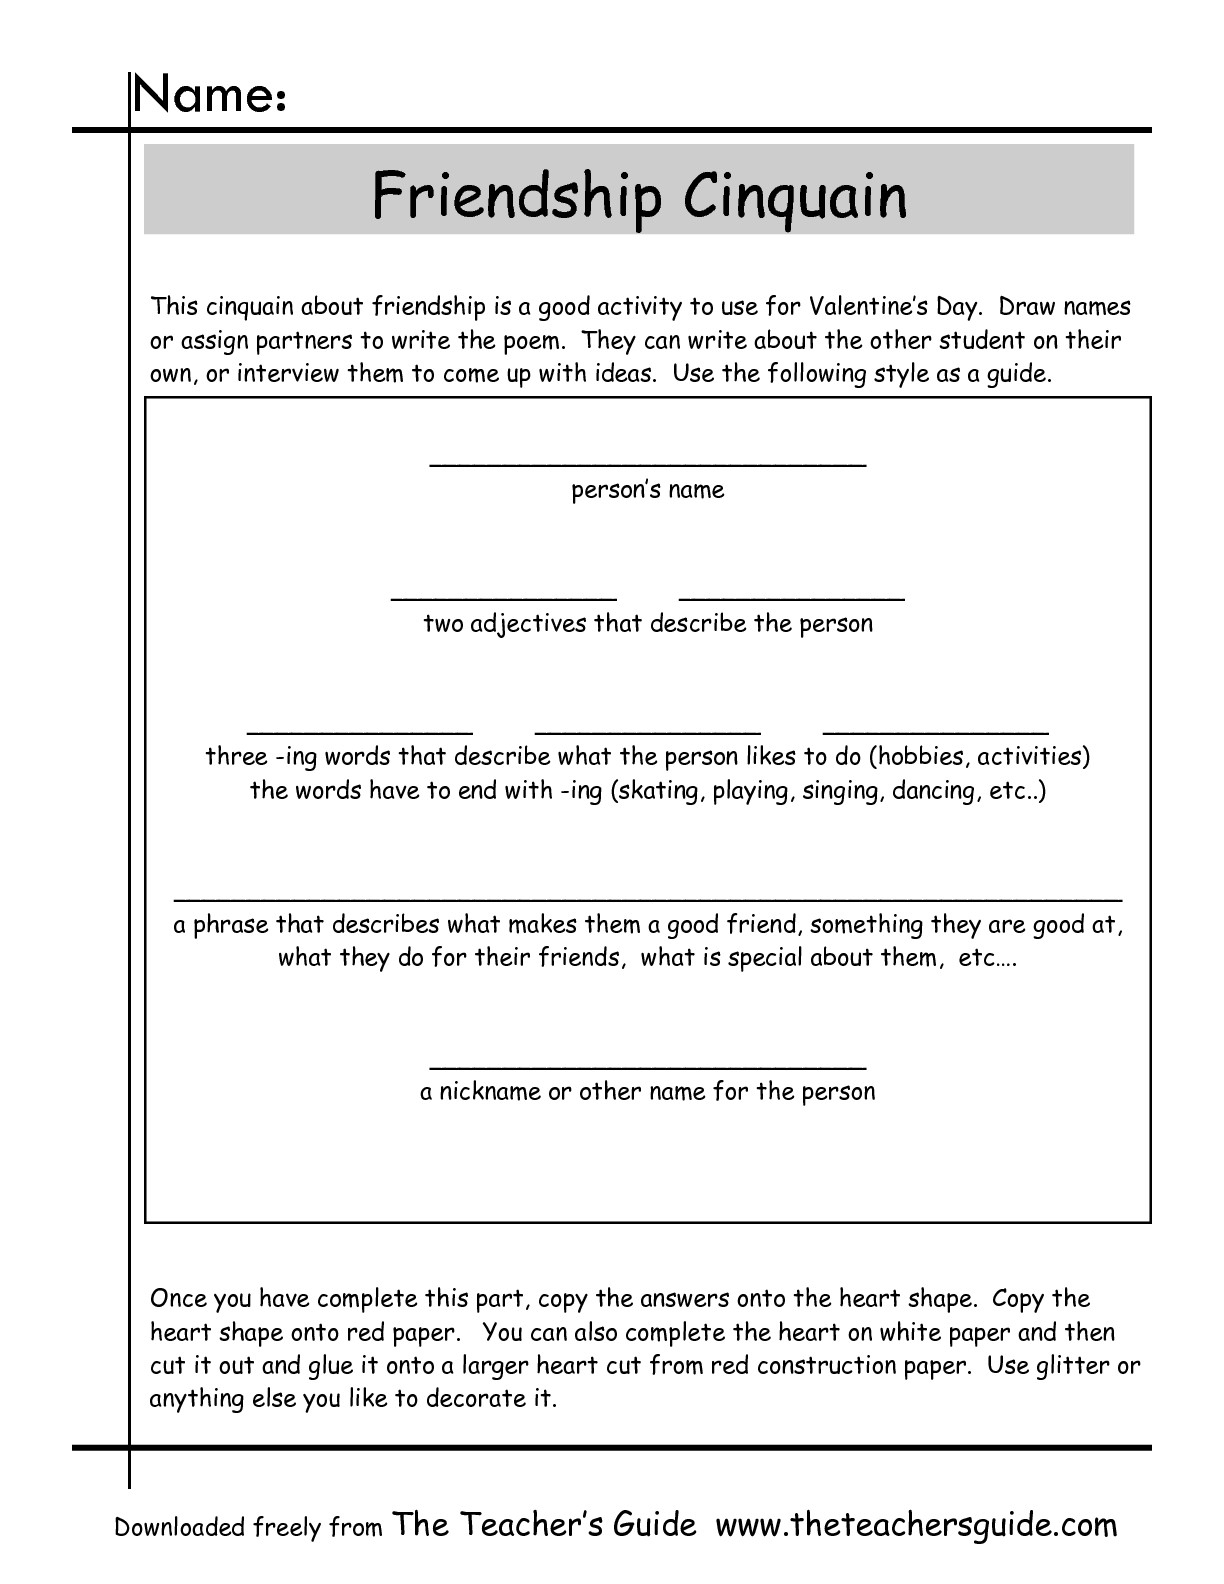 Cinquain Poems Worksheets From The Teacher S Guide To